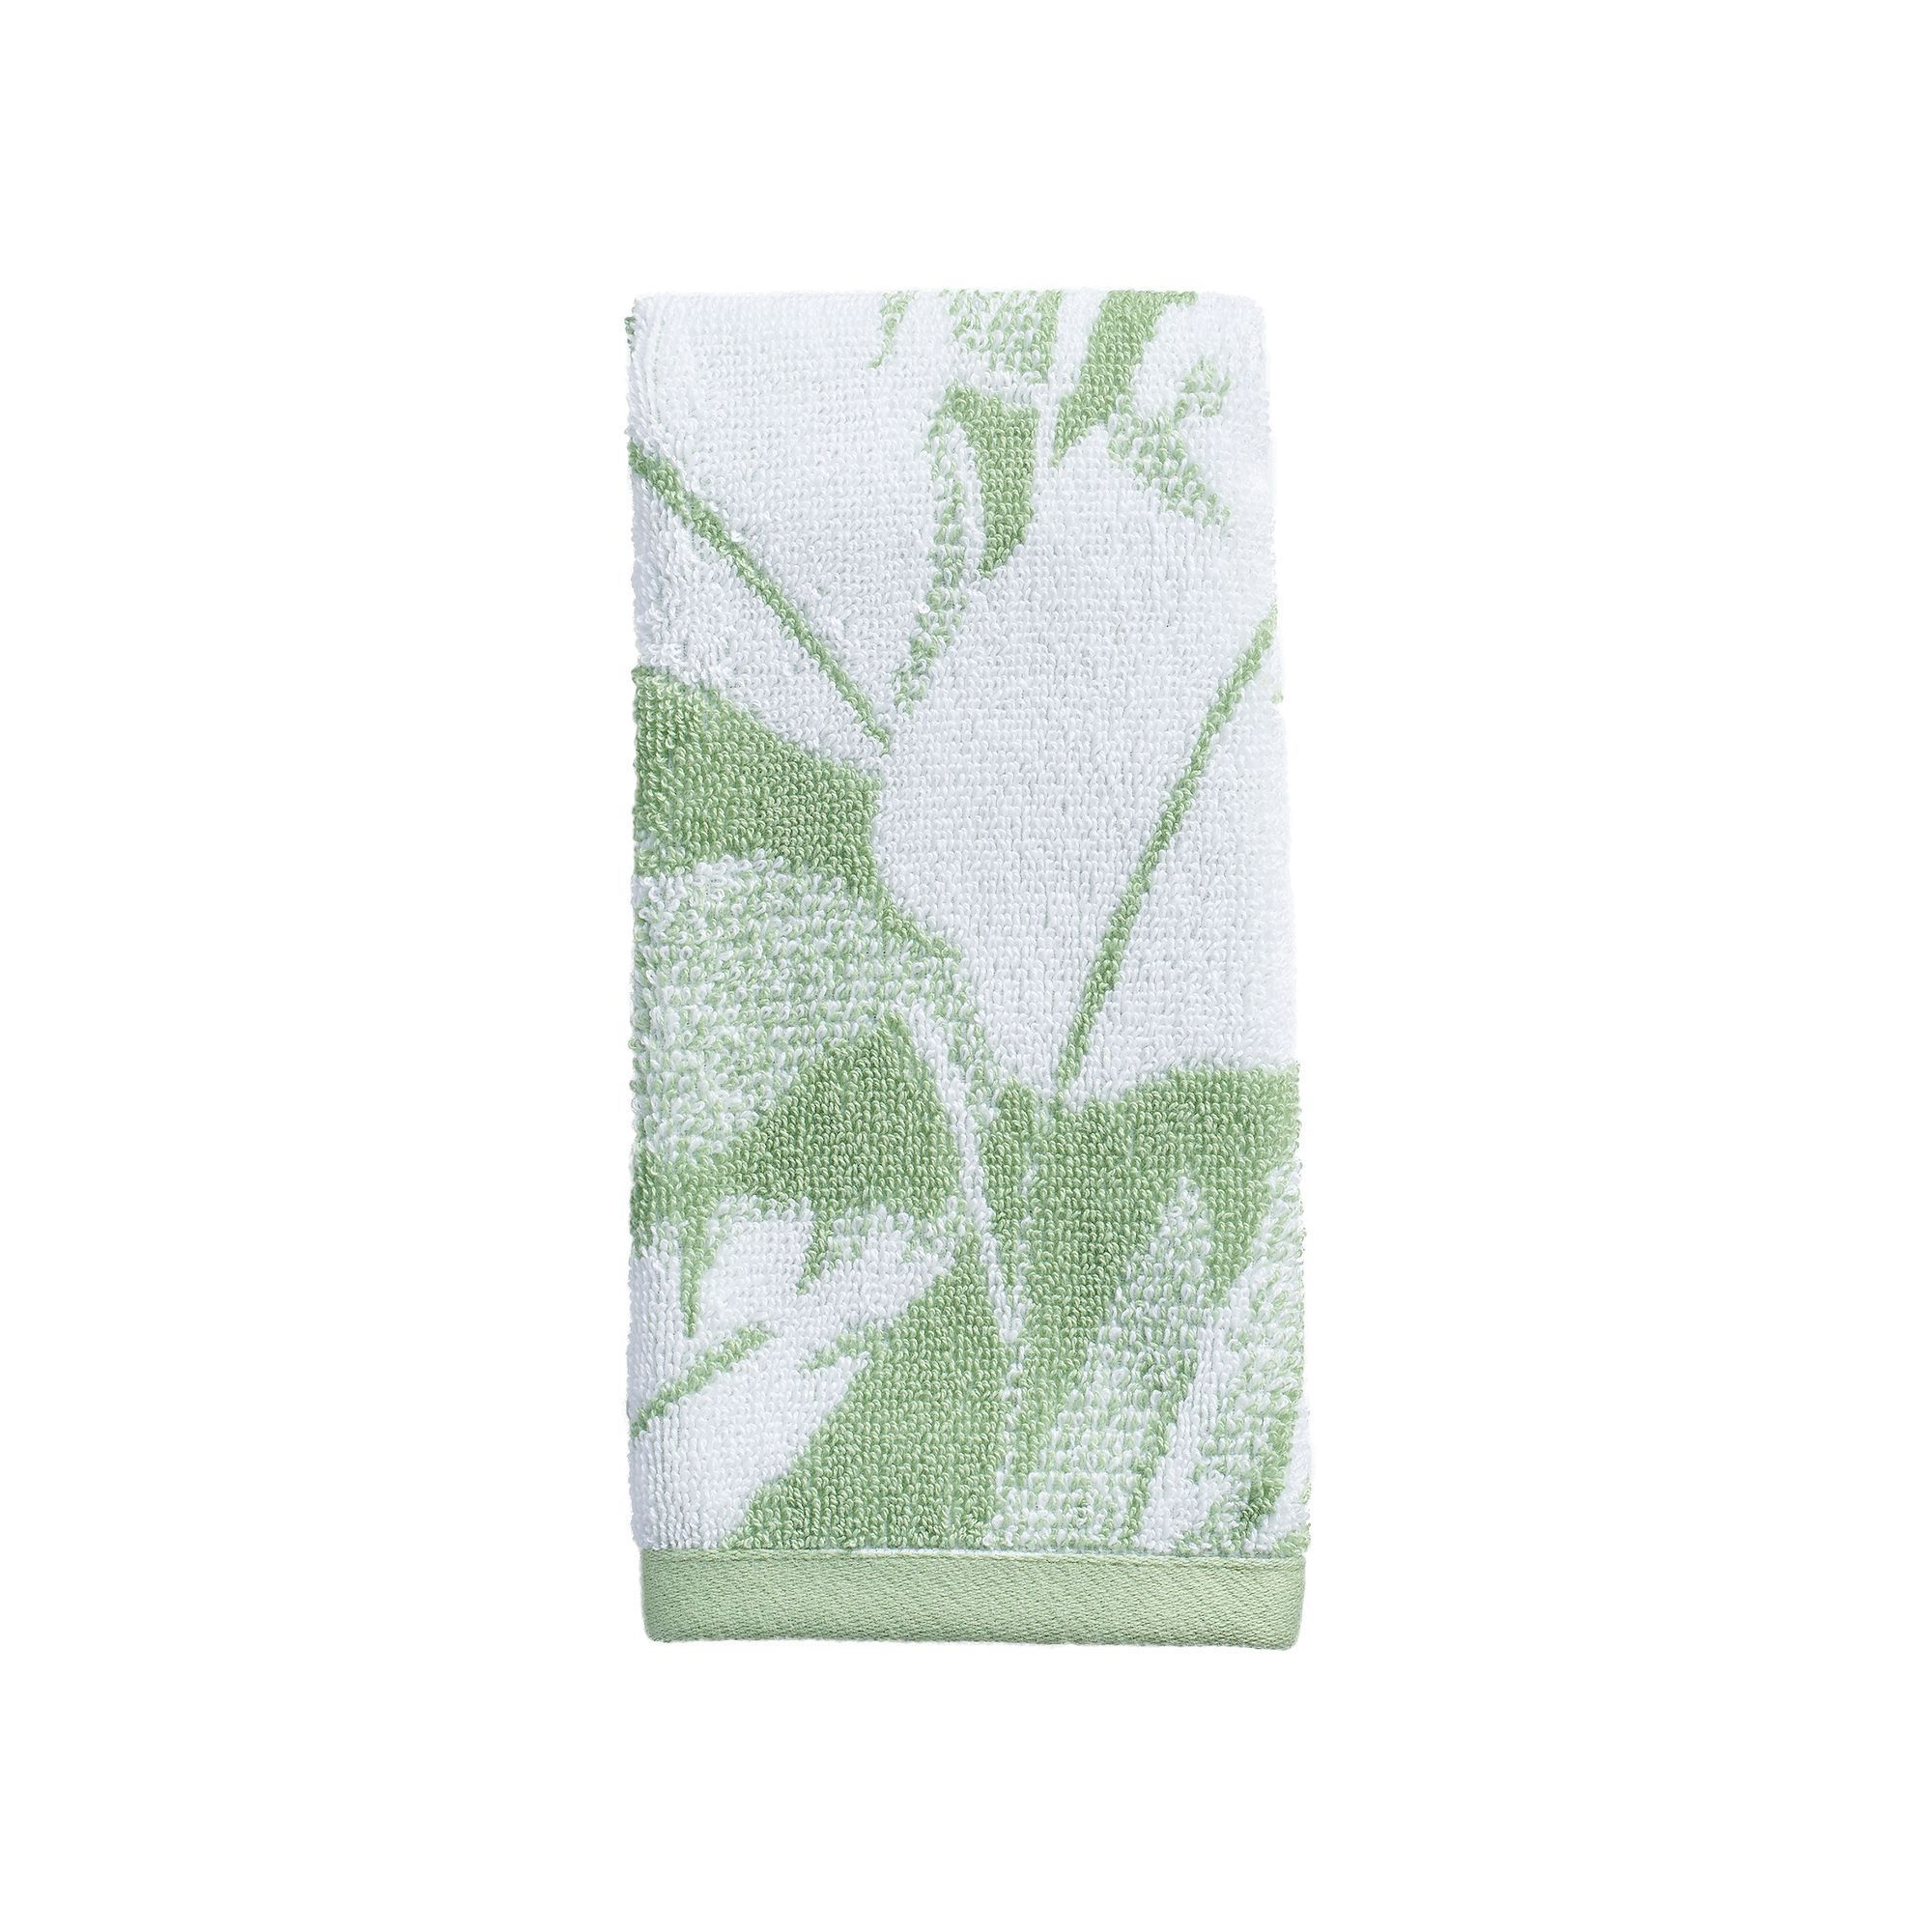 Destinations miami leaf fingertip towel miami towels and leaves